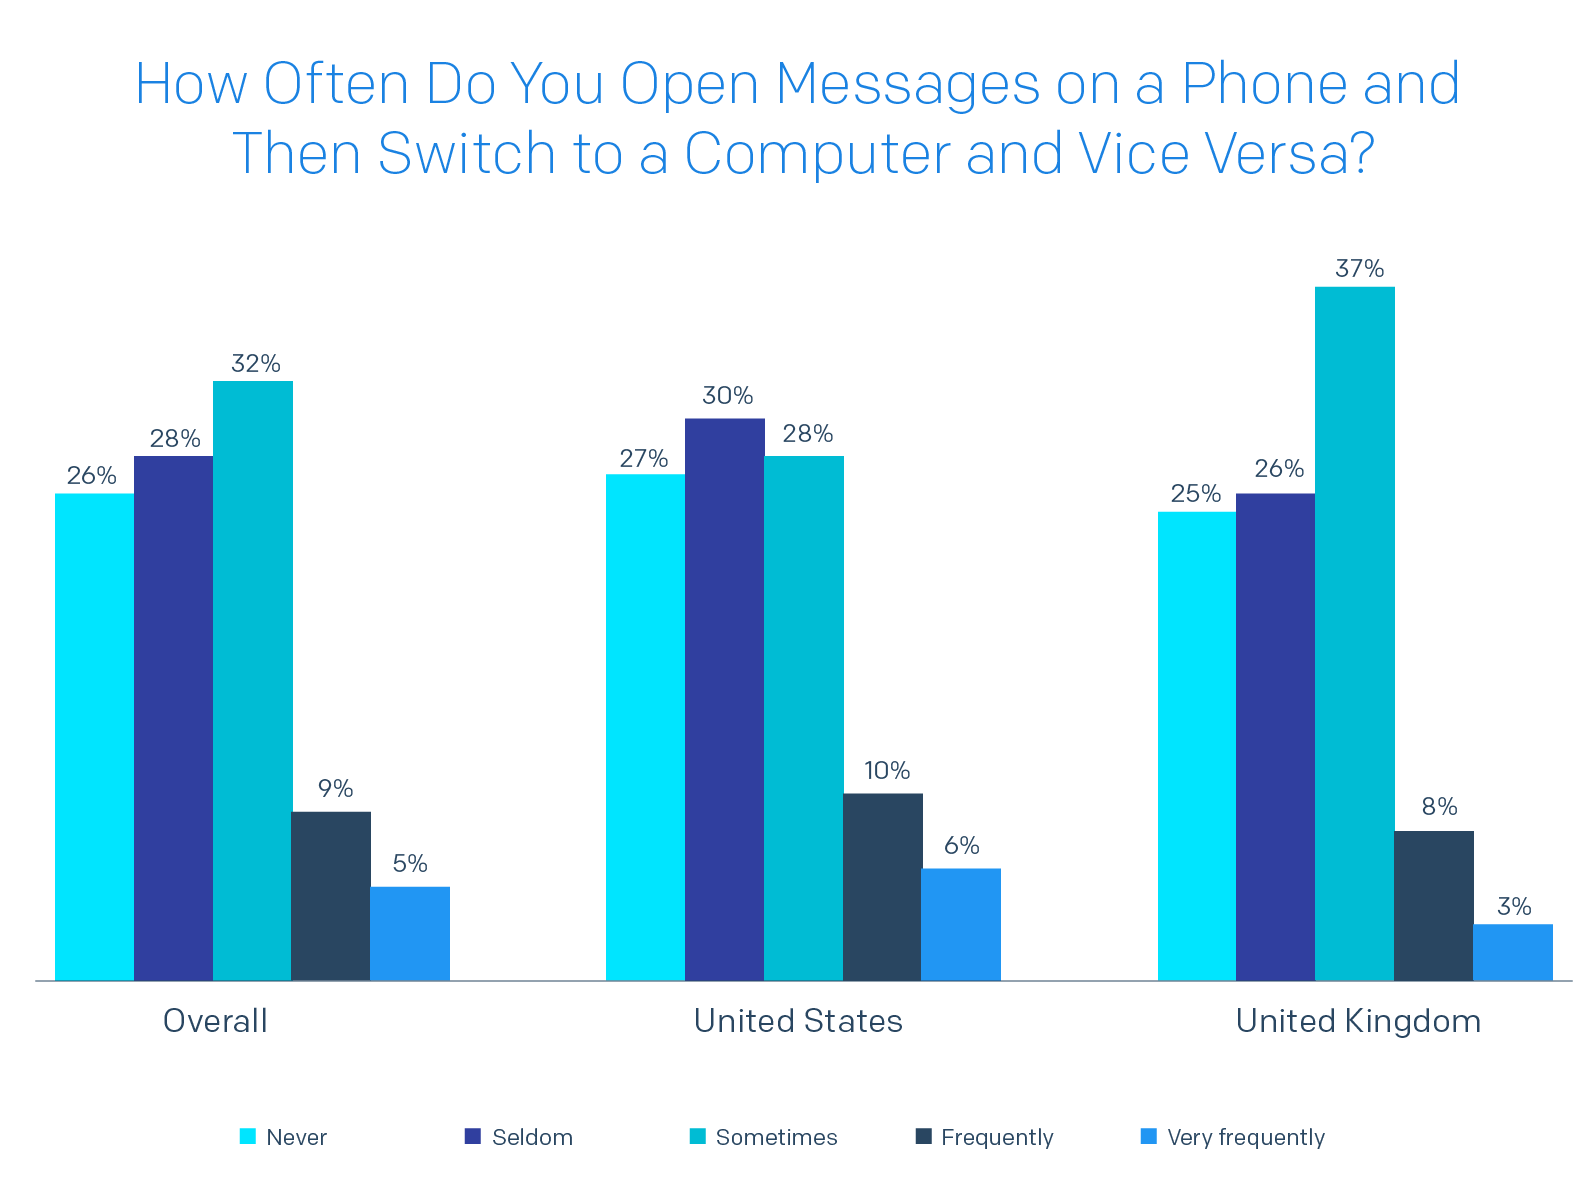 Bar chart of How Often Do You Open Messages on a Phone and Then Switch to a Computer and Vice Versa?